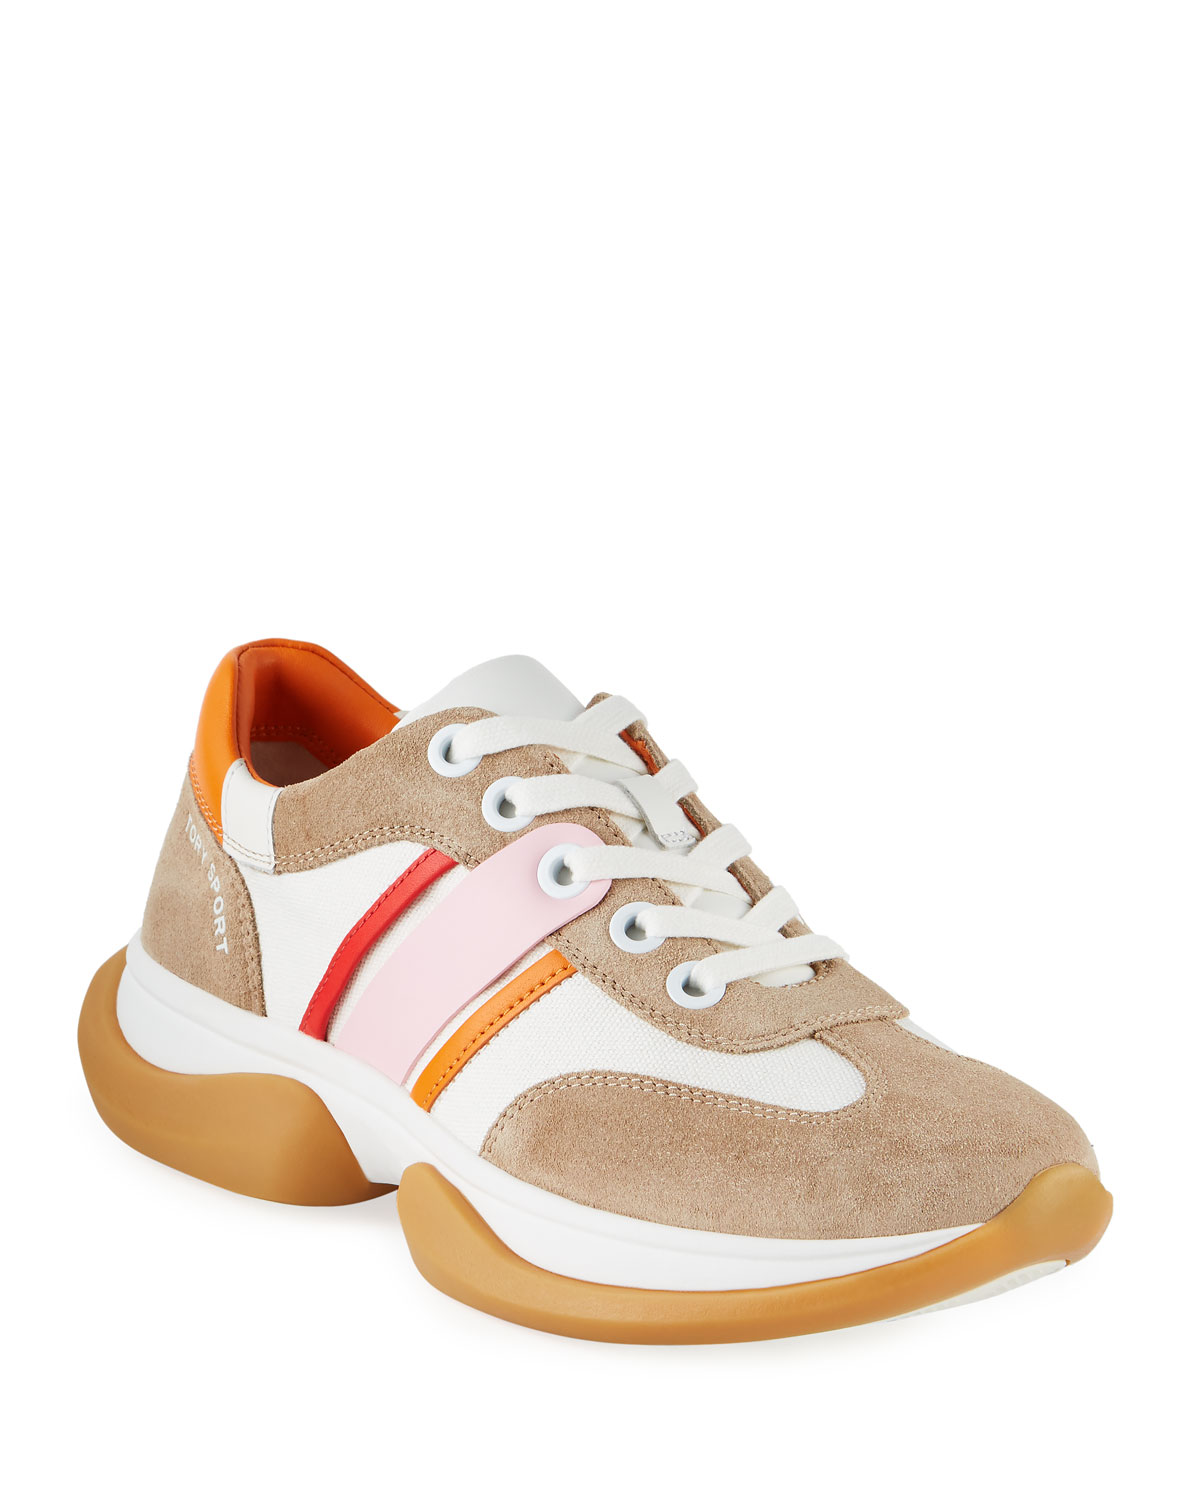 Striped Lace-Up Suede Sneakers